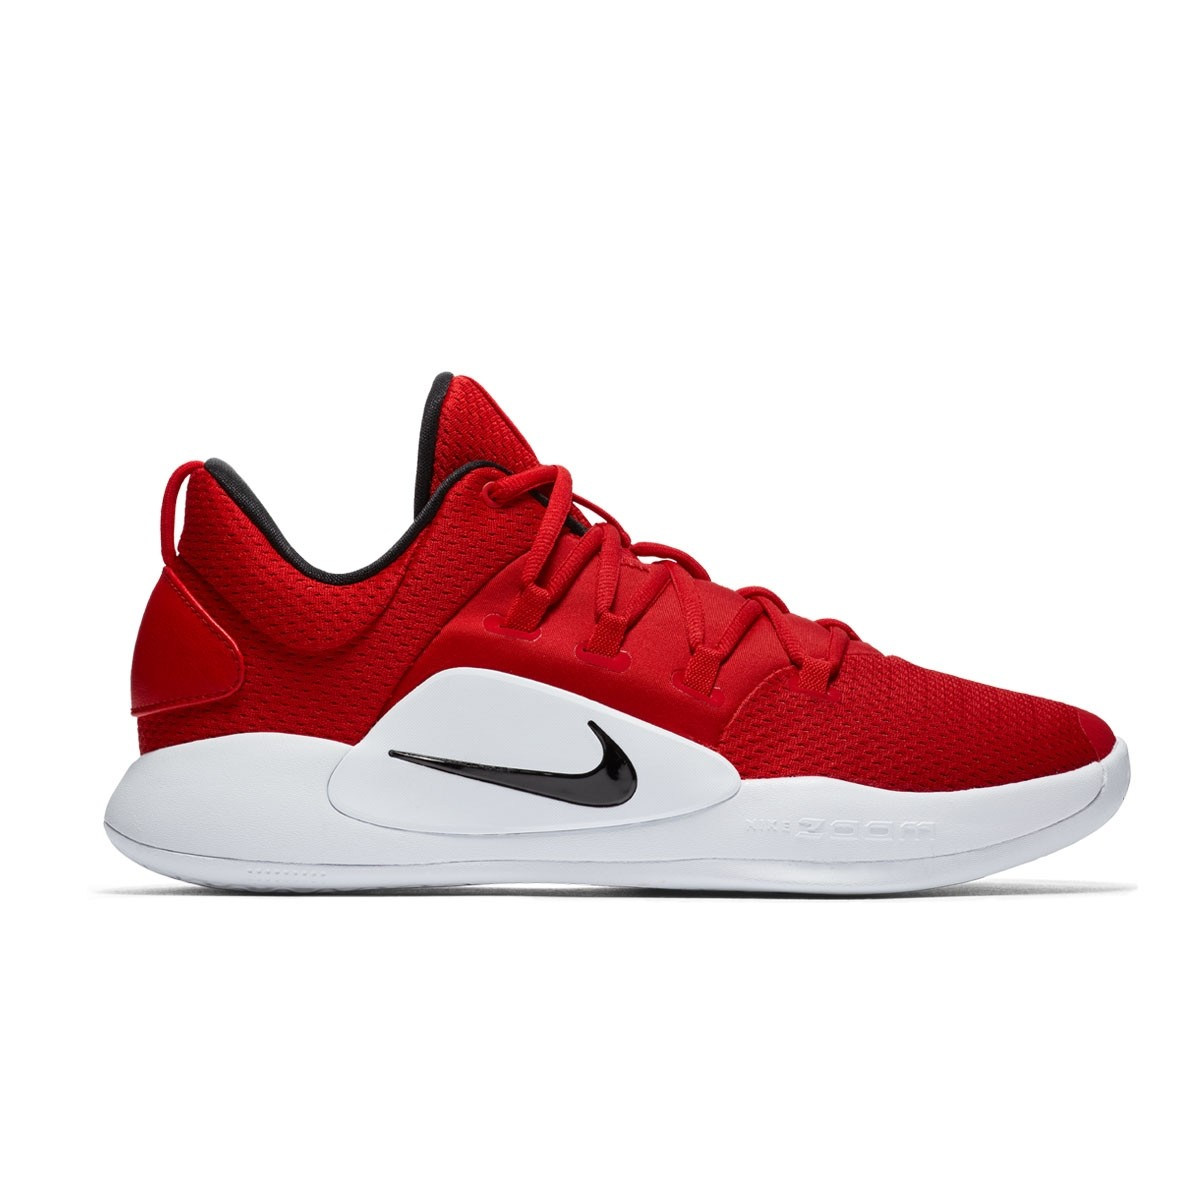 buy popular 28fa5 79f0c Buy Nike Hyperdunk X Low 2018  Red  Basketball shoes   sneakers